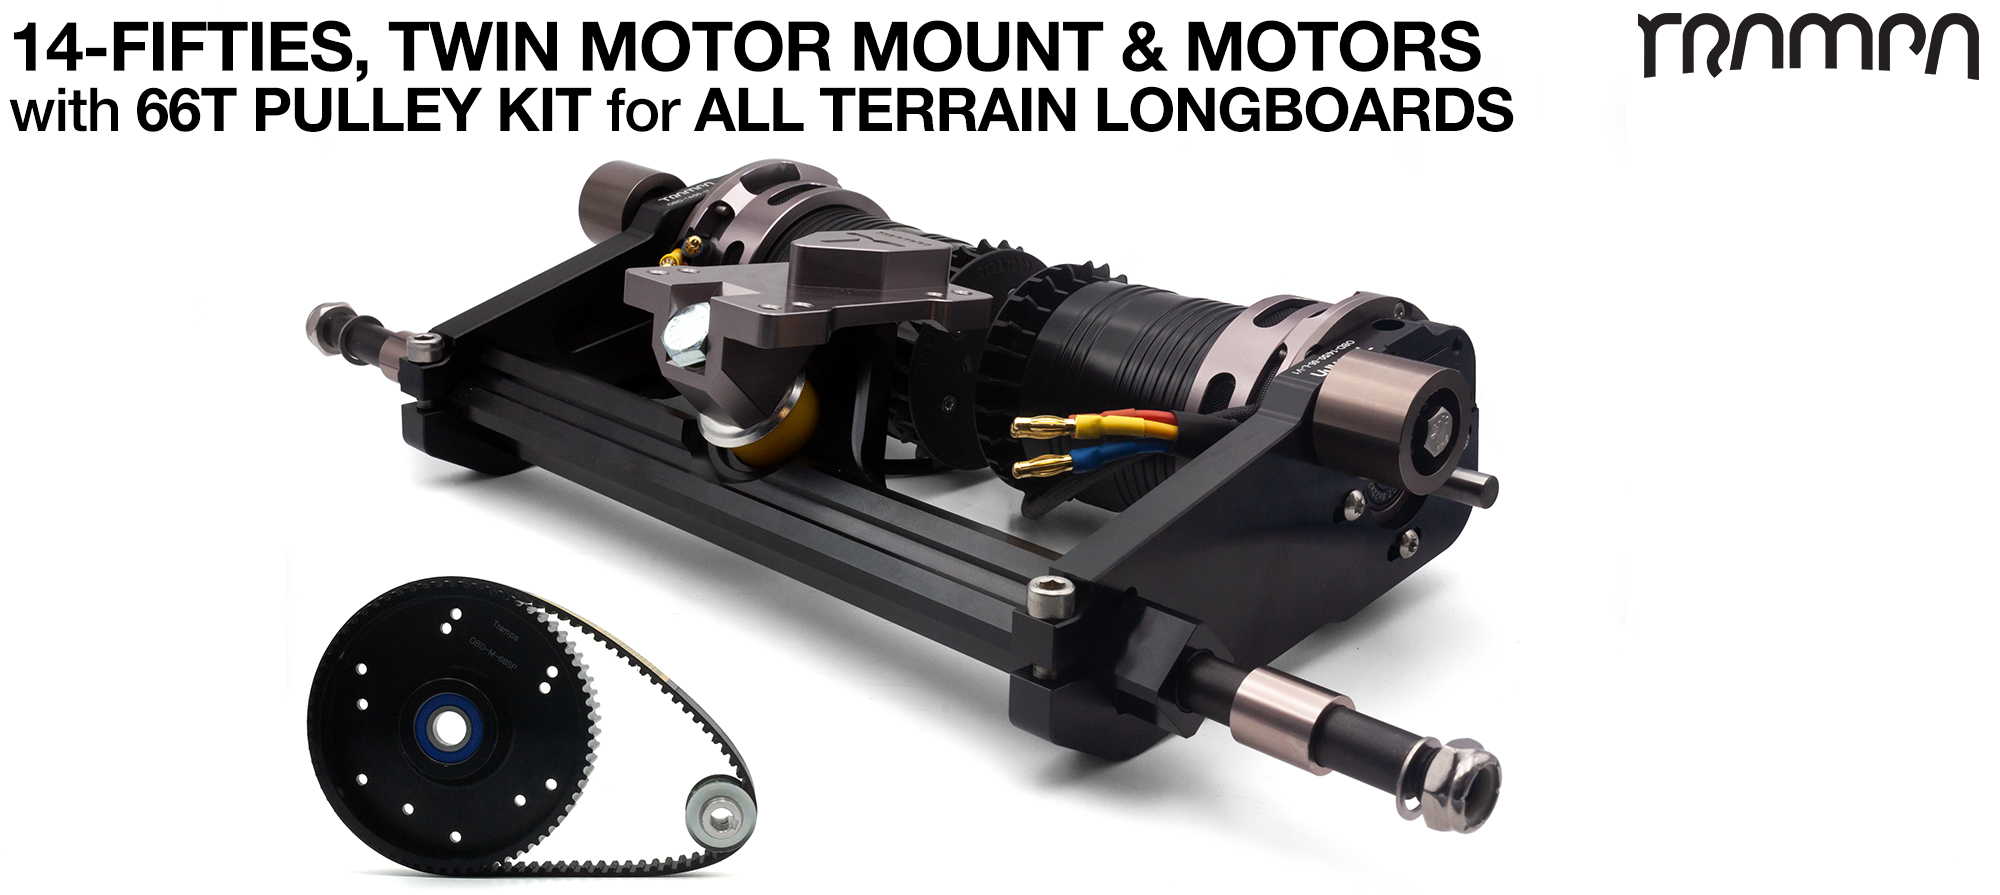 14FiFties Motor Mount with 66 Tooth URBAN  Pulley Kit & Motor & 2x 14FiFties Trucks - TWIN